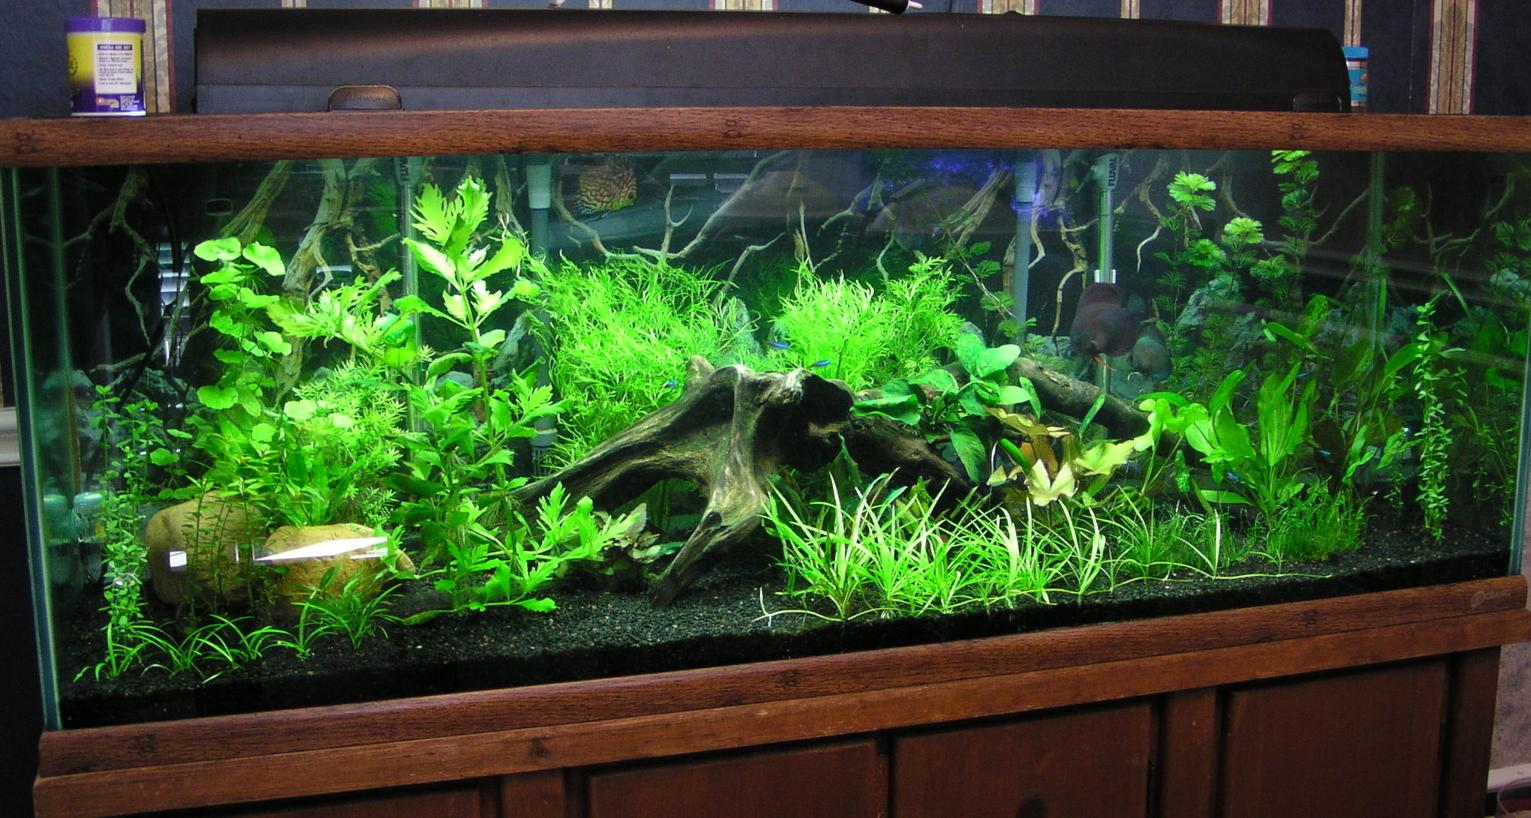 Hi Don, My planted tank is doing well. I wanted to send you a picture ...